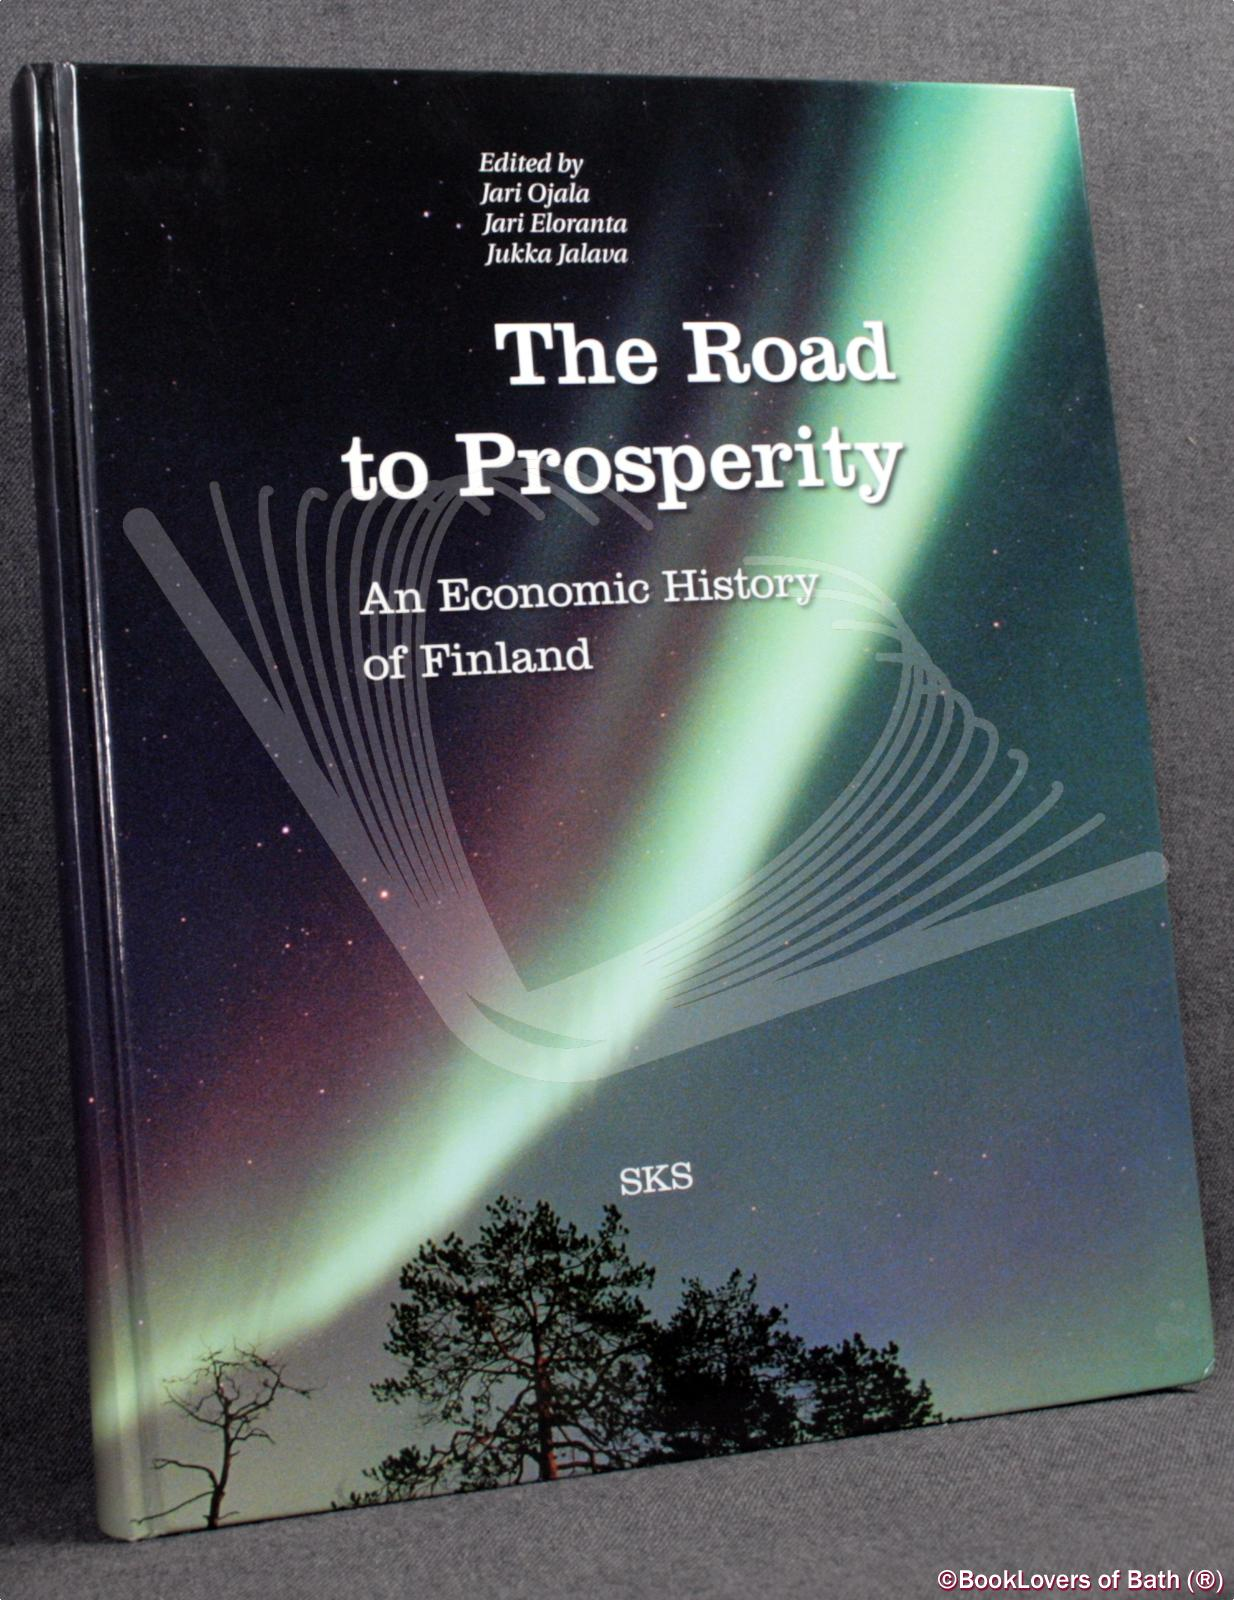 The Road to Prosperity: An Economic History of Finland - Edited by Jari Ojala, Jari Eloranta & Jukka Jalava